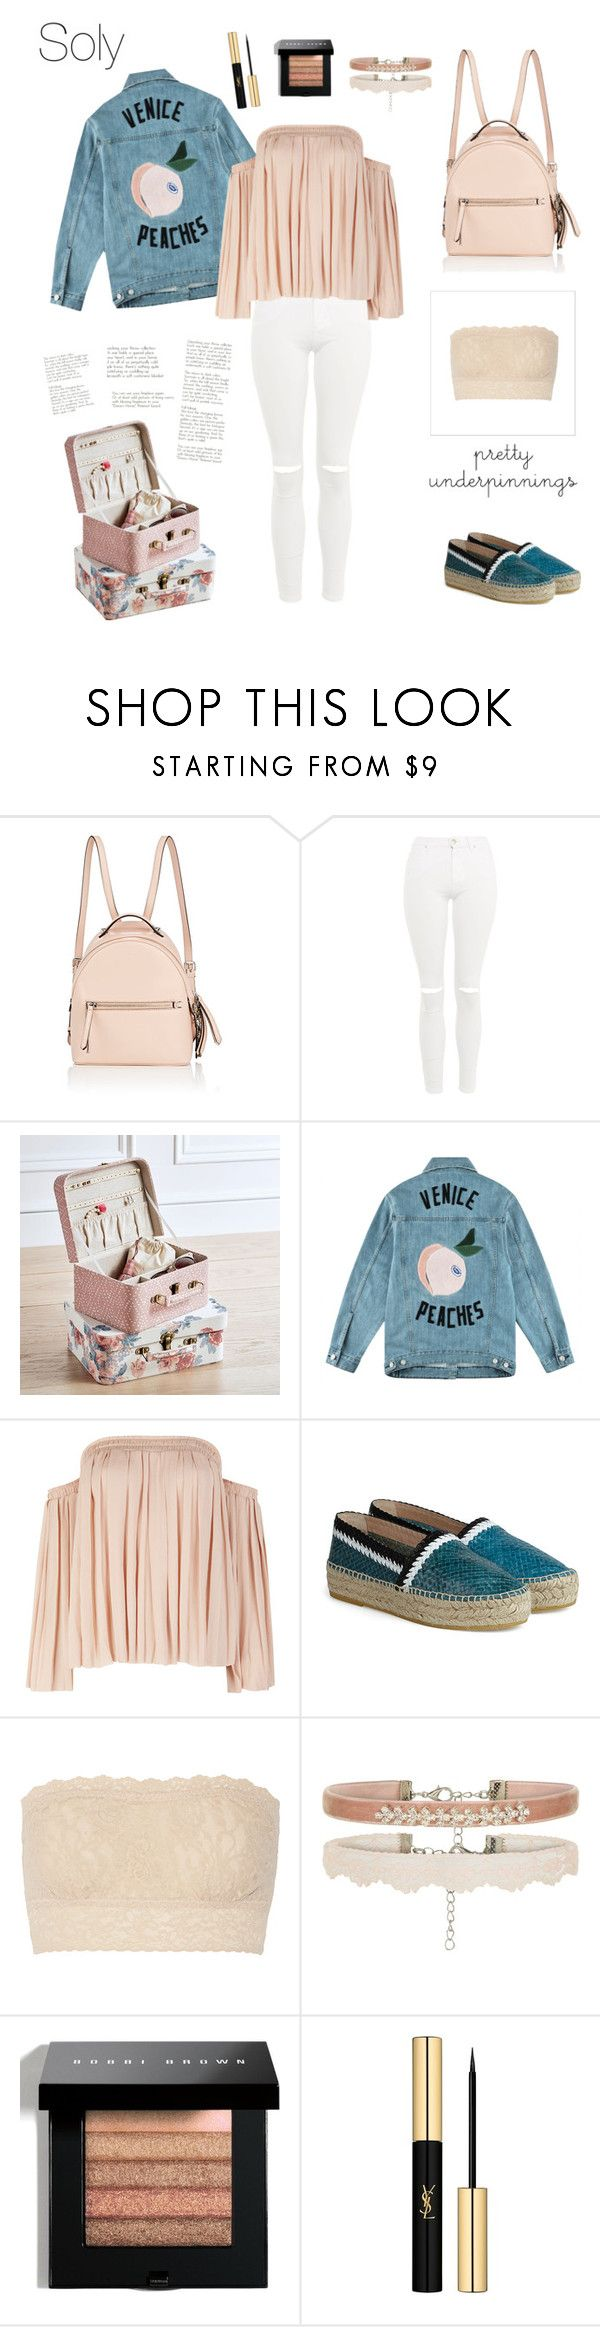 """""""Soly: off the shoulder"""" by solyslstore ❤ liked on Polyvore featuring Fendi, Topshop, PBteen, Être Cécile, Elizabeth and James, Hanky Panky, Bobbi Brown Cosmetics and Yves Saint Laurent"""